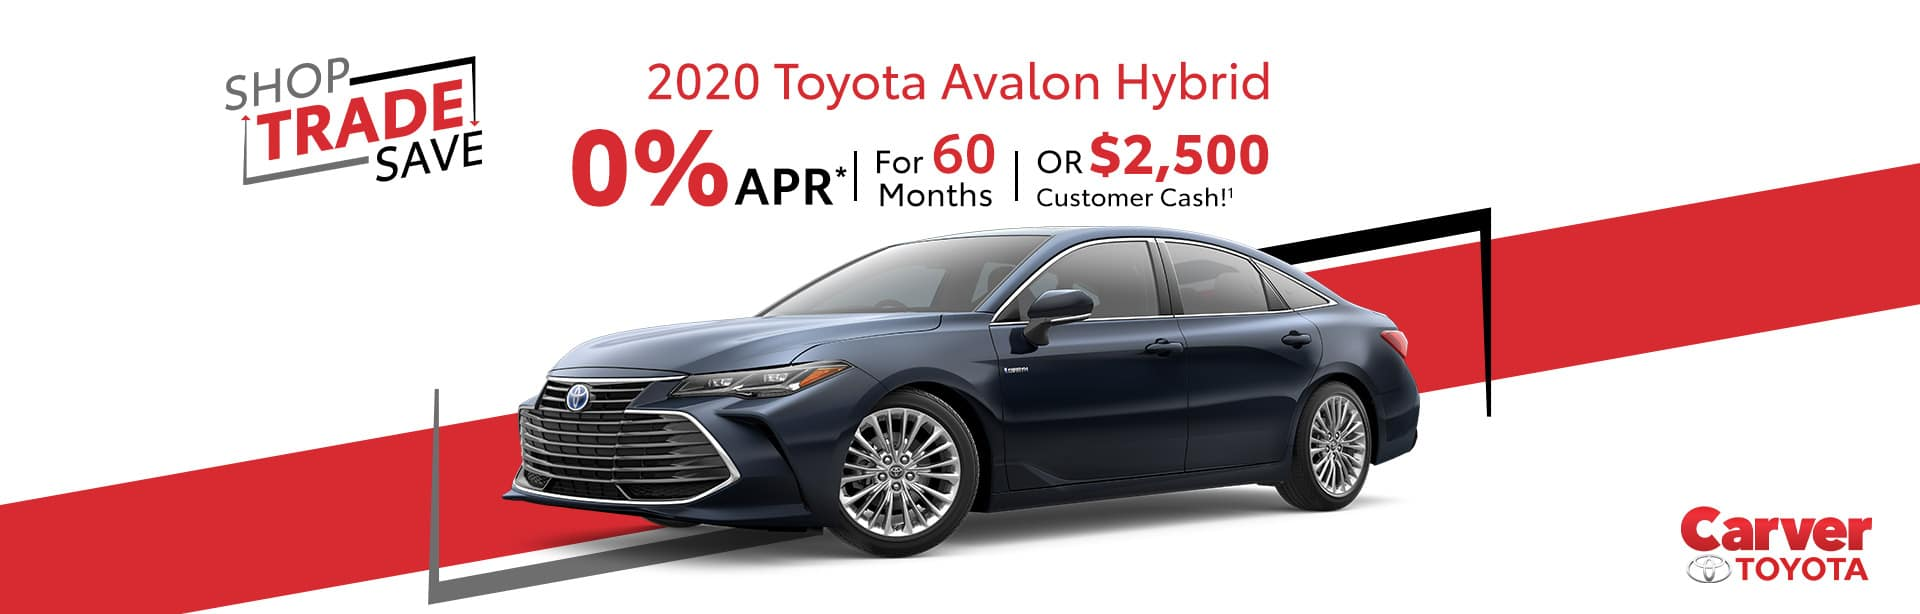 Toyota Avalon Hybrid Inventory near Greensburg, Indiana